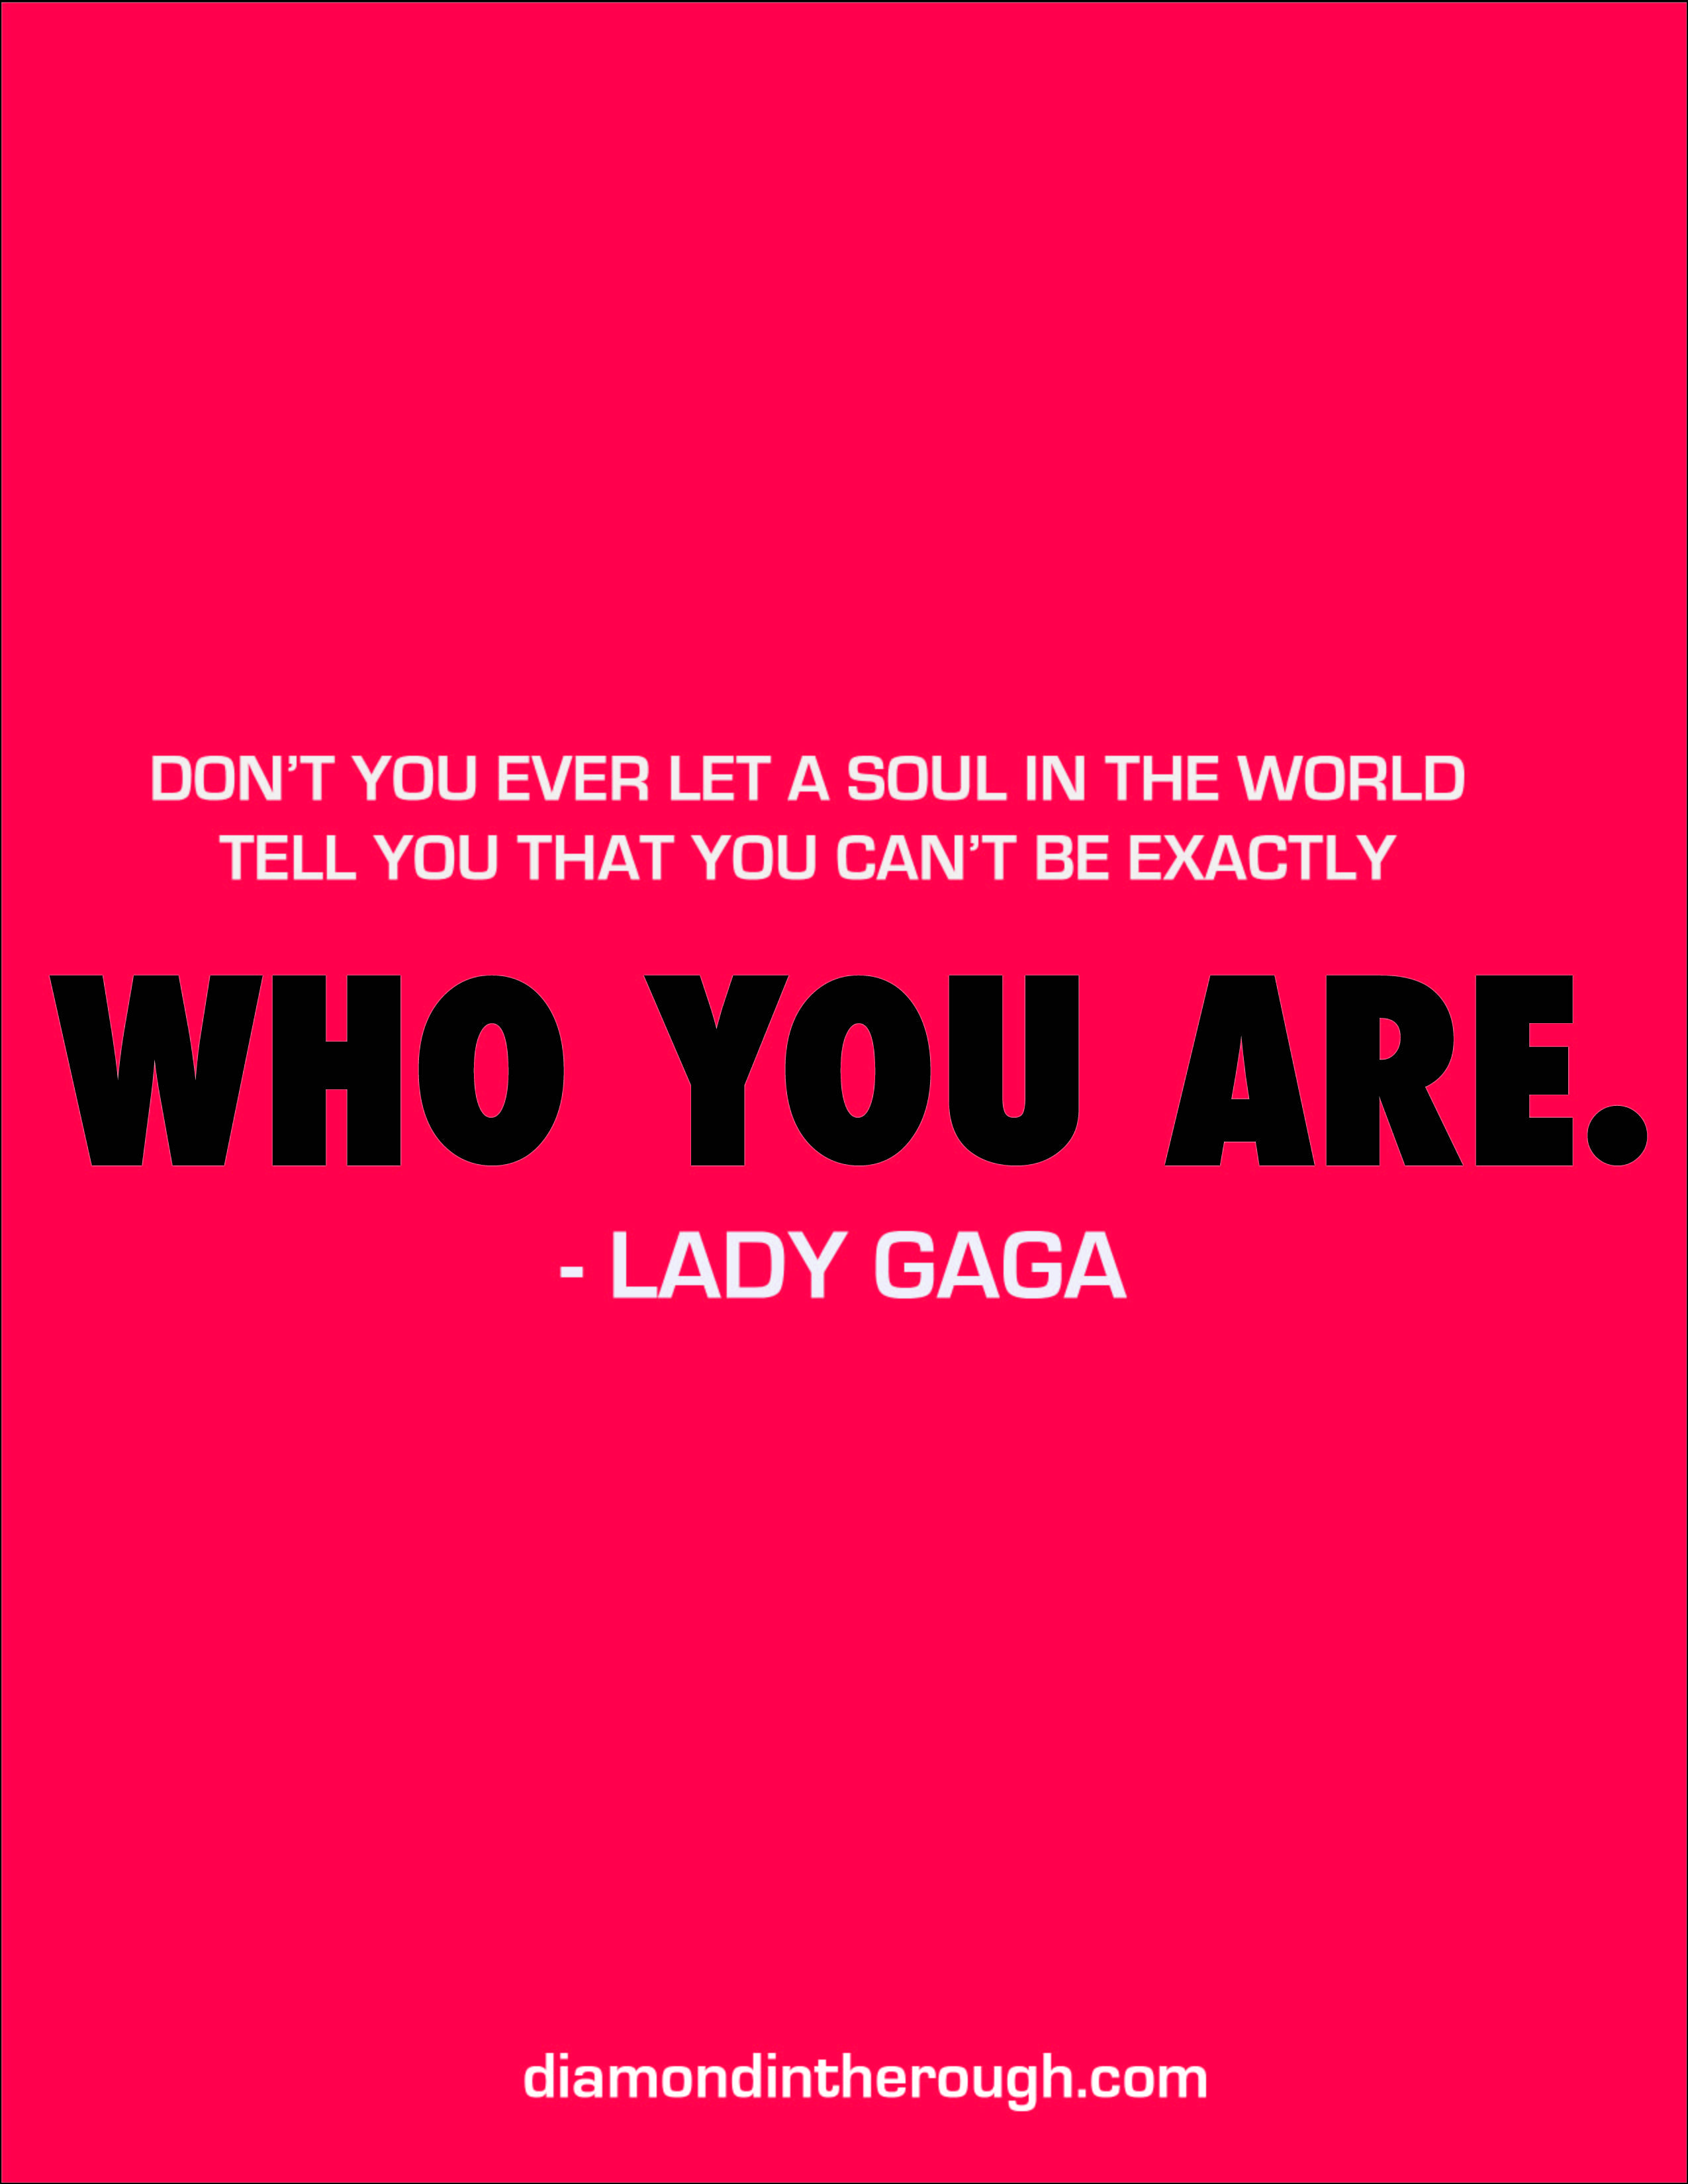 """""""Don't you ever let a soul in the world tell you that you can't be exactly who you are."""" - Lady Gaga #30DaysOfOriginality"""